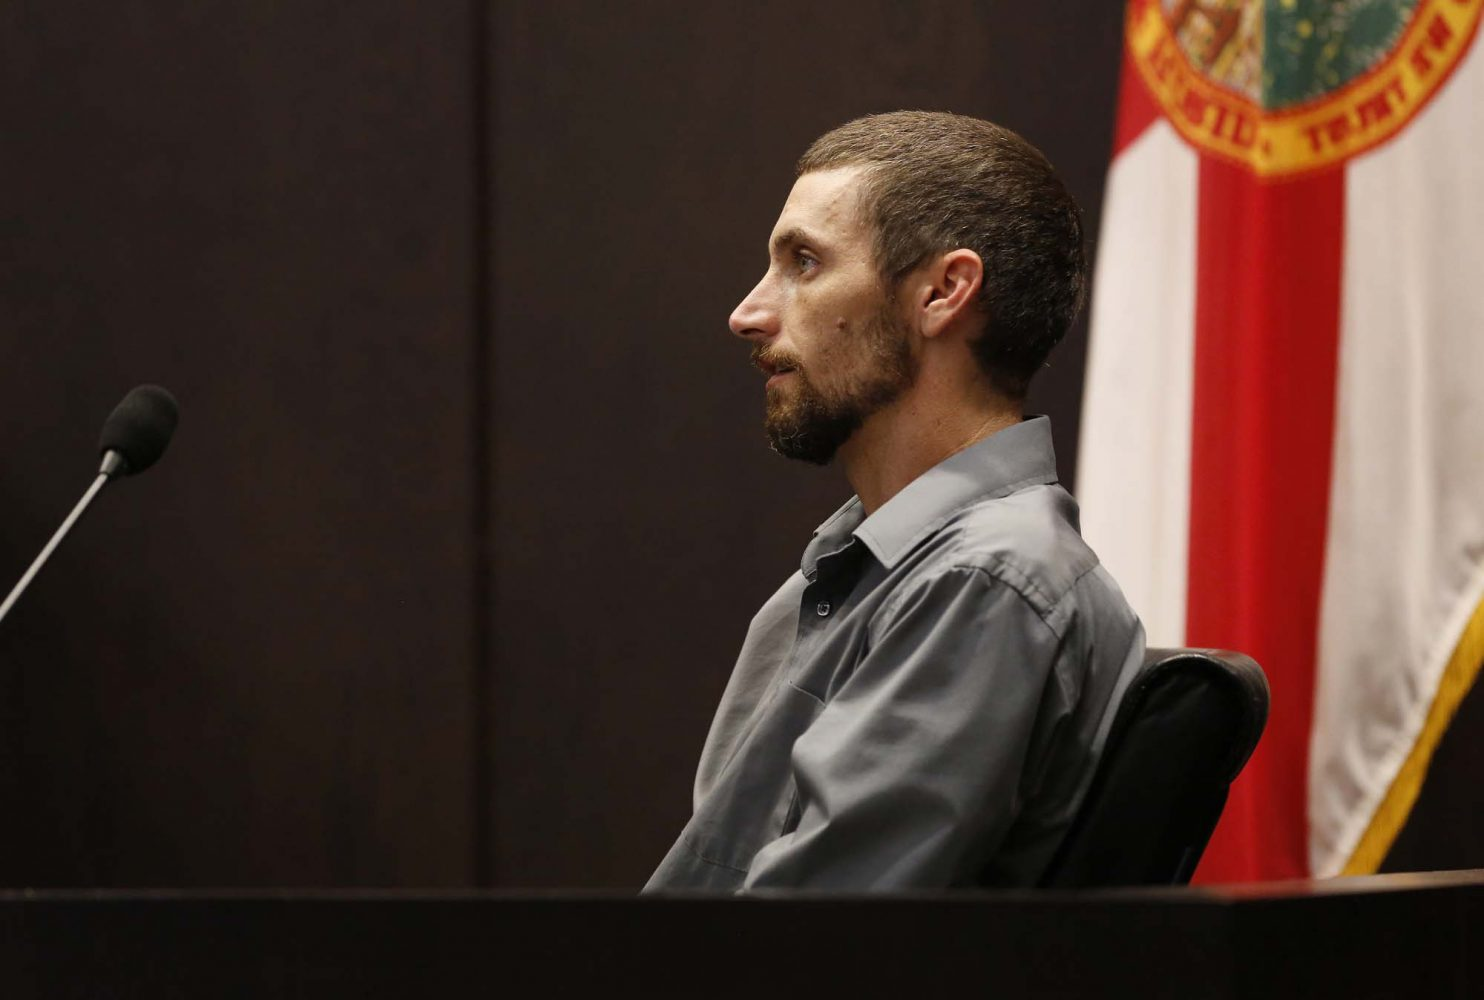 Levy County resident Jesse Everidge describes how he and his brother-in-law James Rains found the remains of Christian Aguilar while the two searched for jasmine vines in the Gulf Hammock Hunt Club during Bravo's murder trial in courtroom 1B of the Alachua County Criminal Justice Center Friday, August 8, 2014.  Bravo is accused of killing University of Florida student Christian Aguilar.  (Doug Finger/The Gainesville Sun)